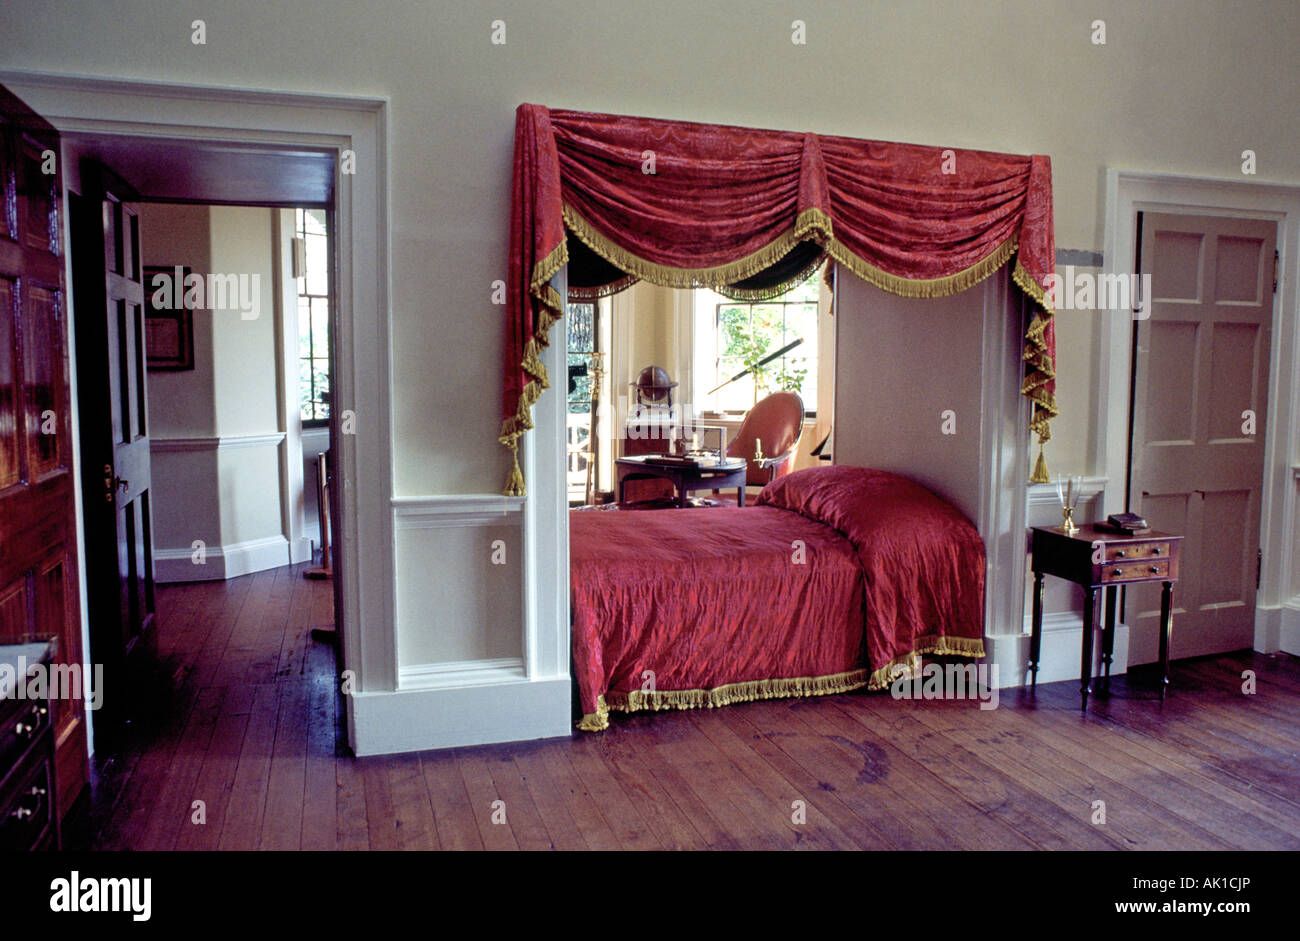 Attrayant President Jefferson T Bedroom At Monticello Home Of Thomas Jefferson Third  President Of The United States